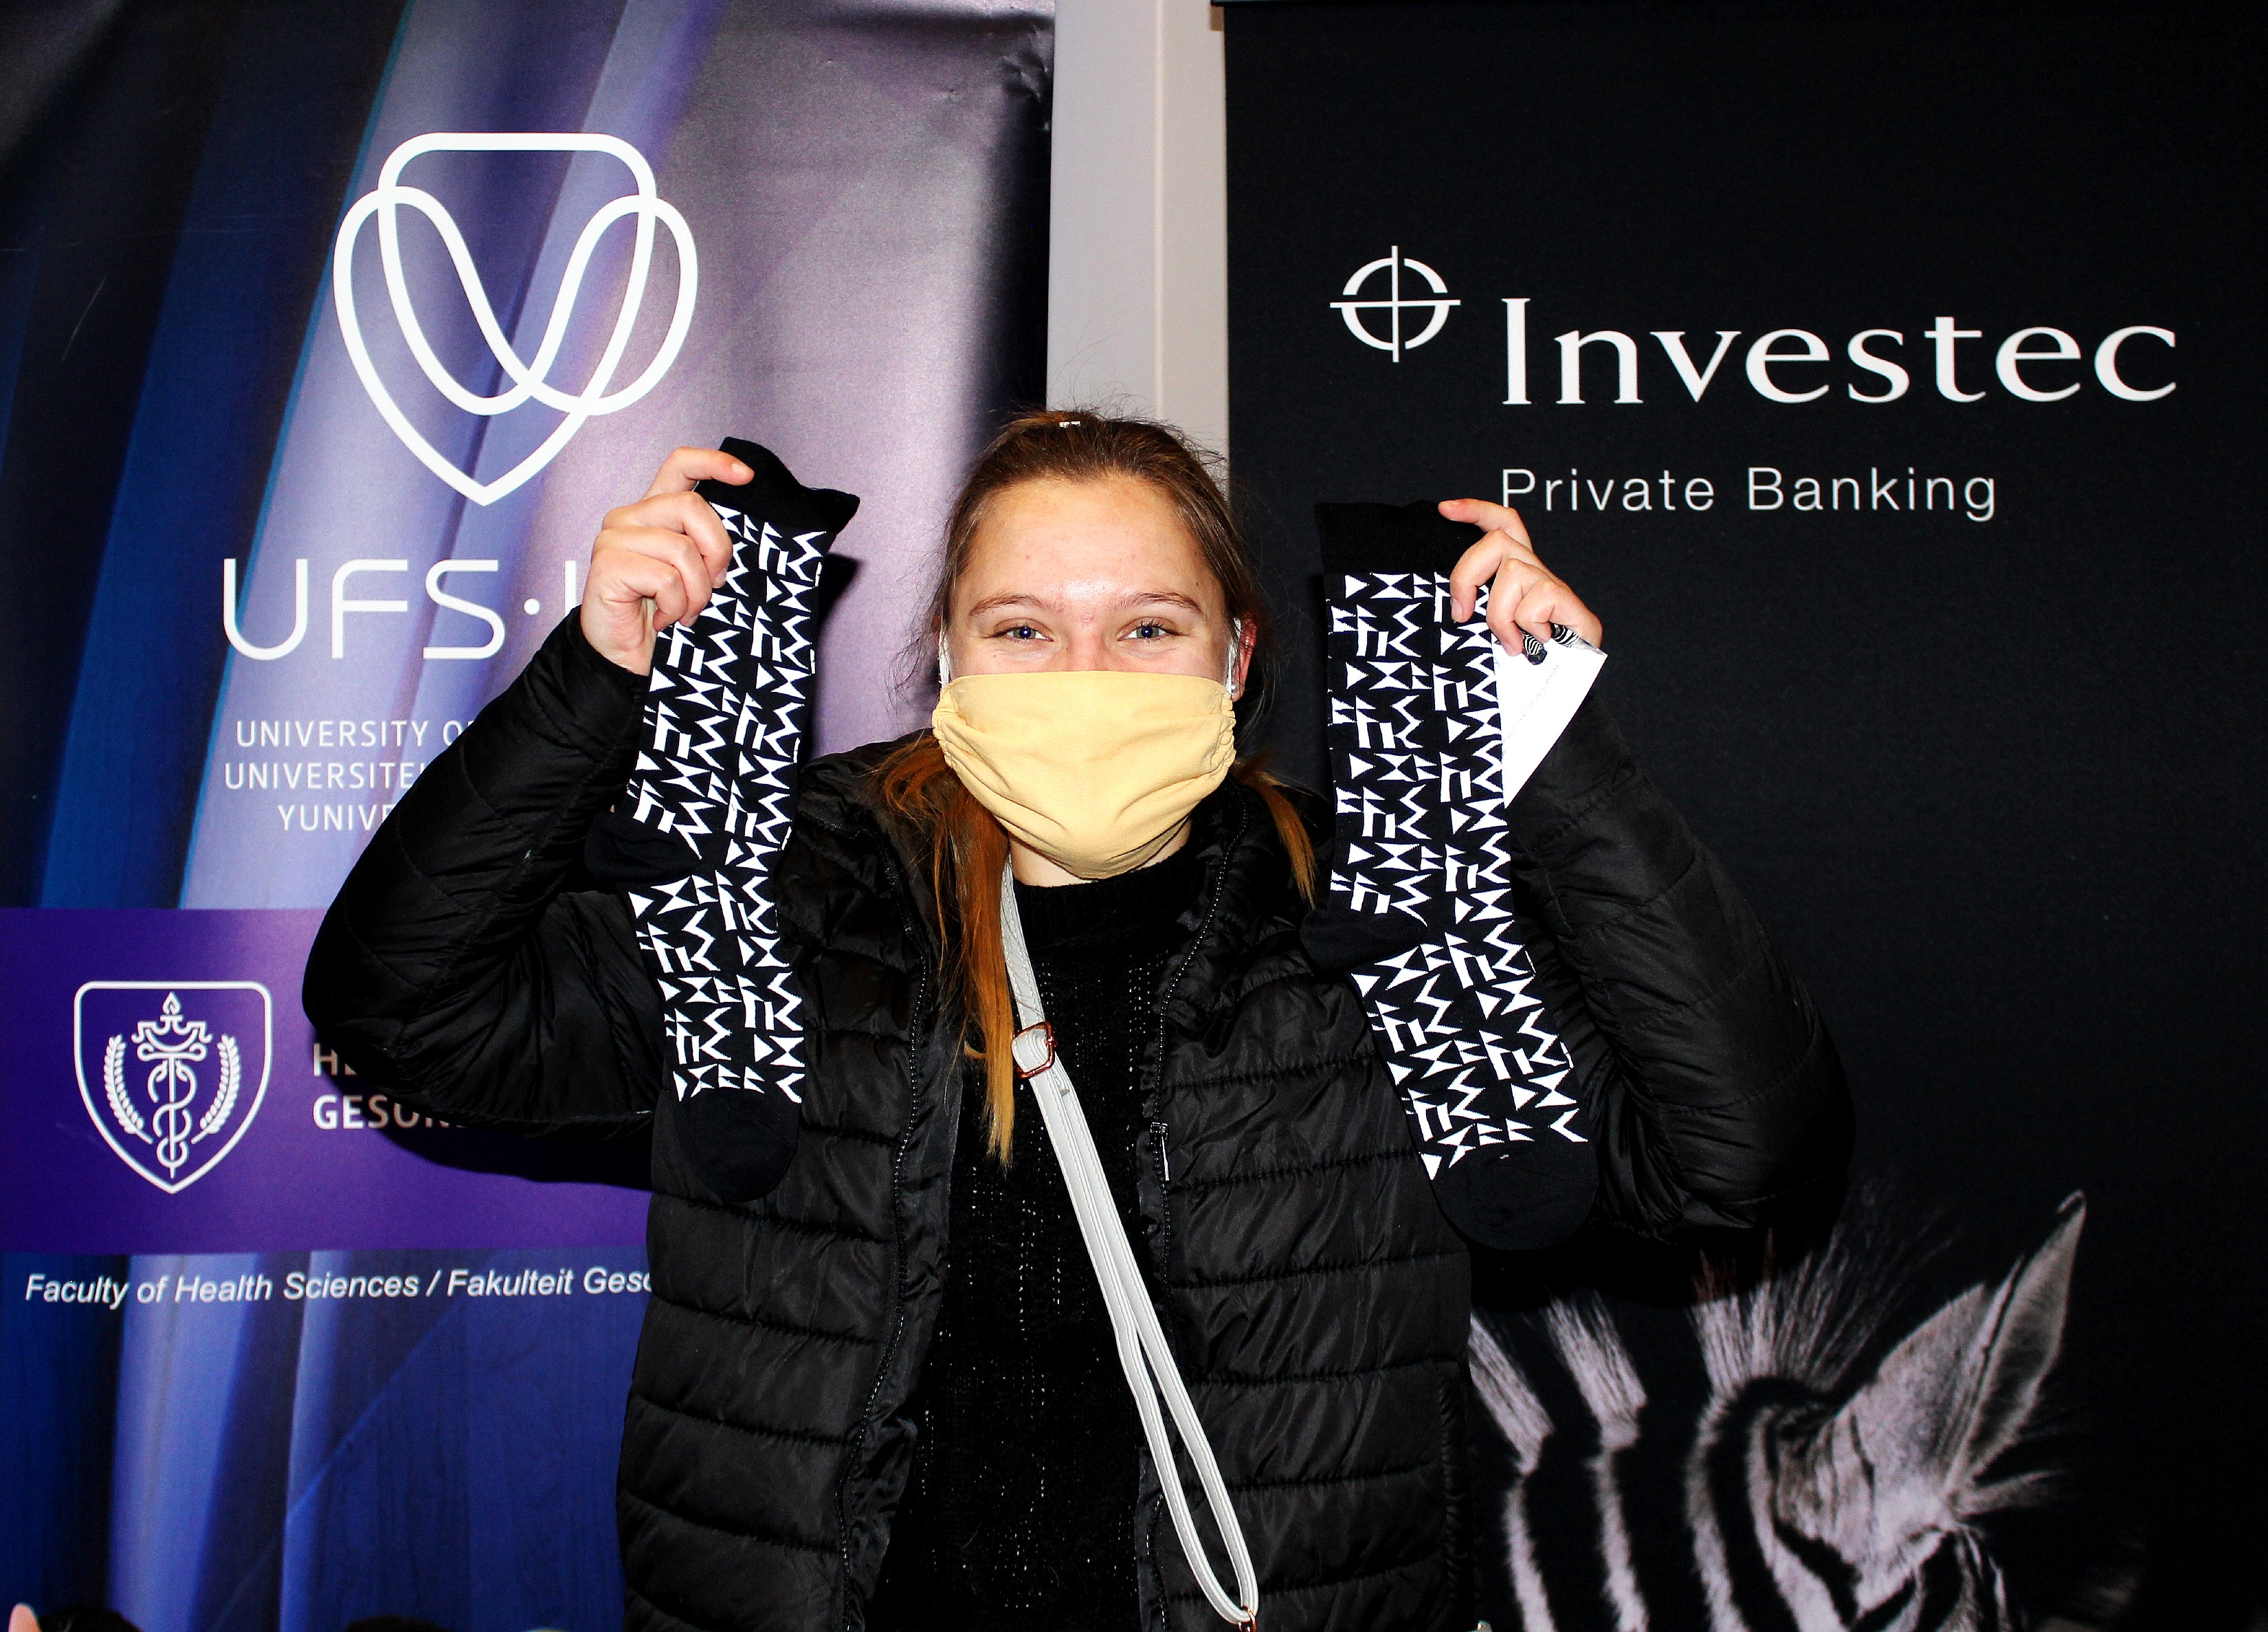 First-year student, Nicolene van Tonder, was also happy to receive a pair of socks for this special day to show her support for healthcare workers.